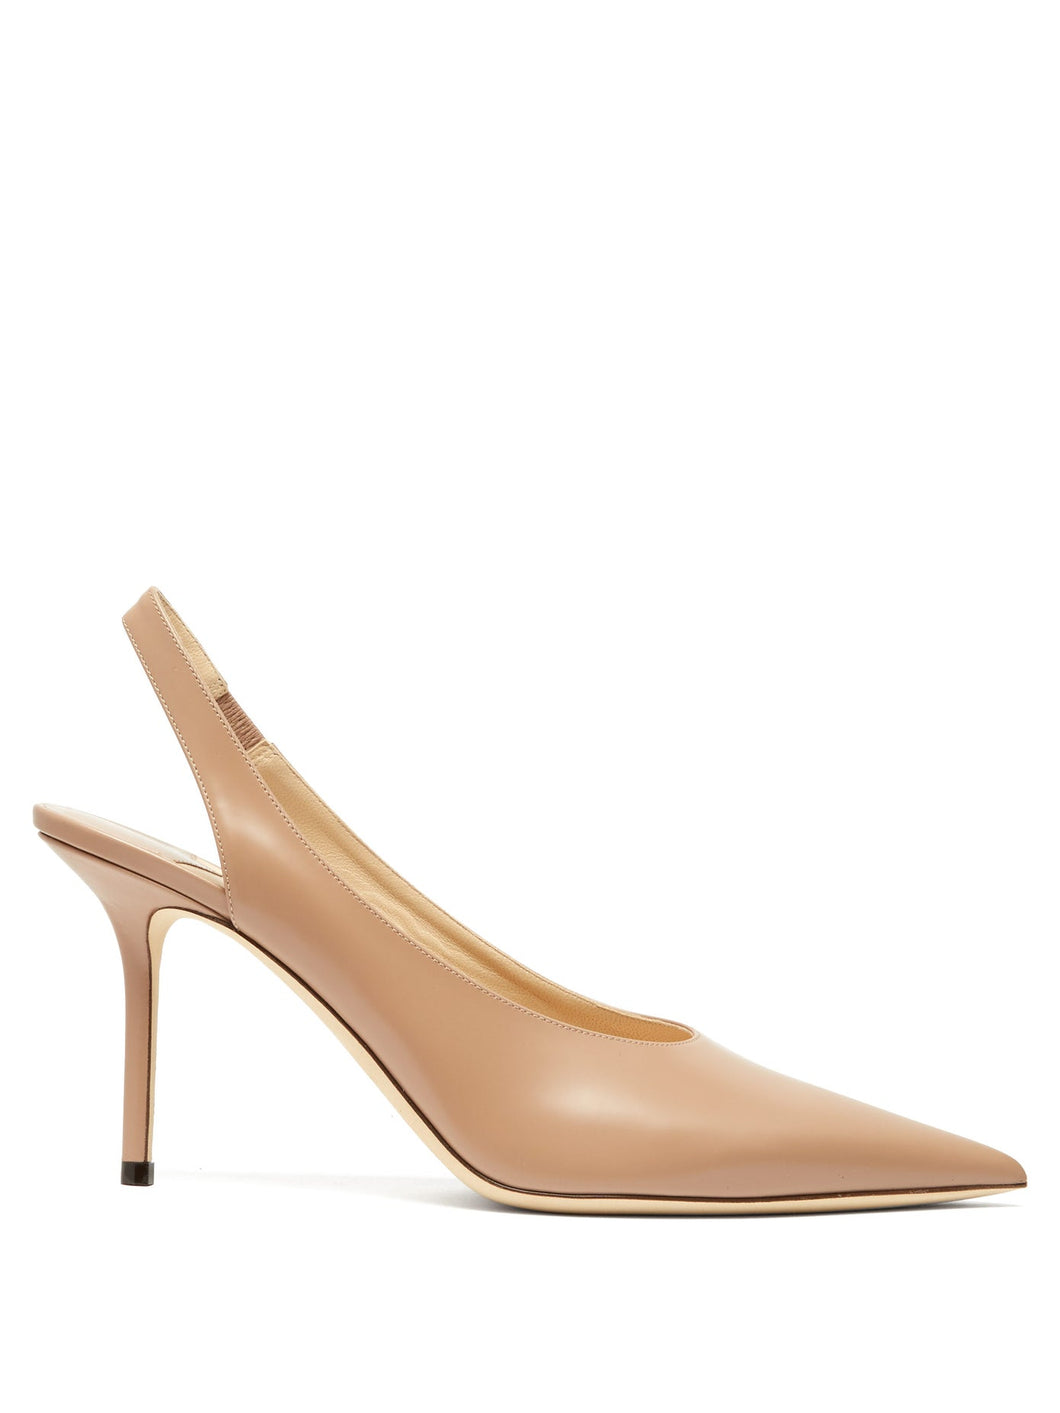 Ivy 85 slingback leather pumps